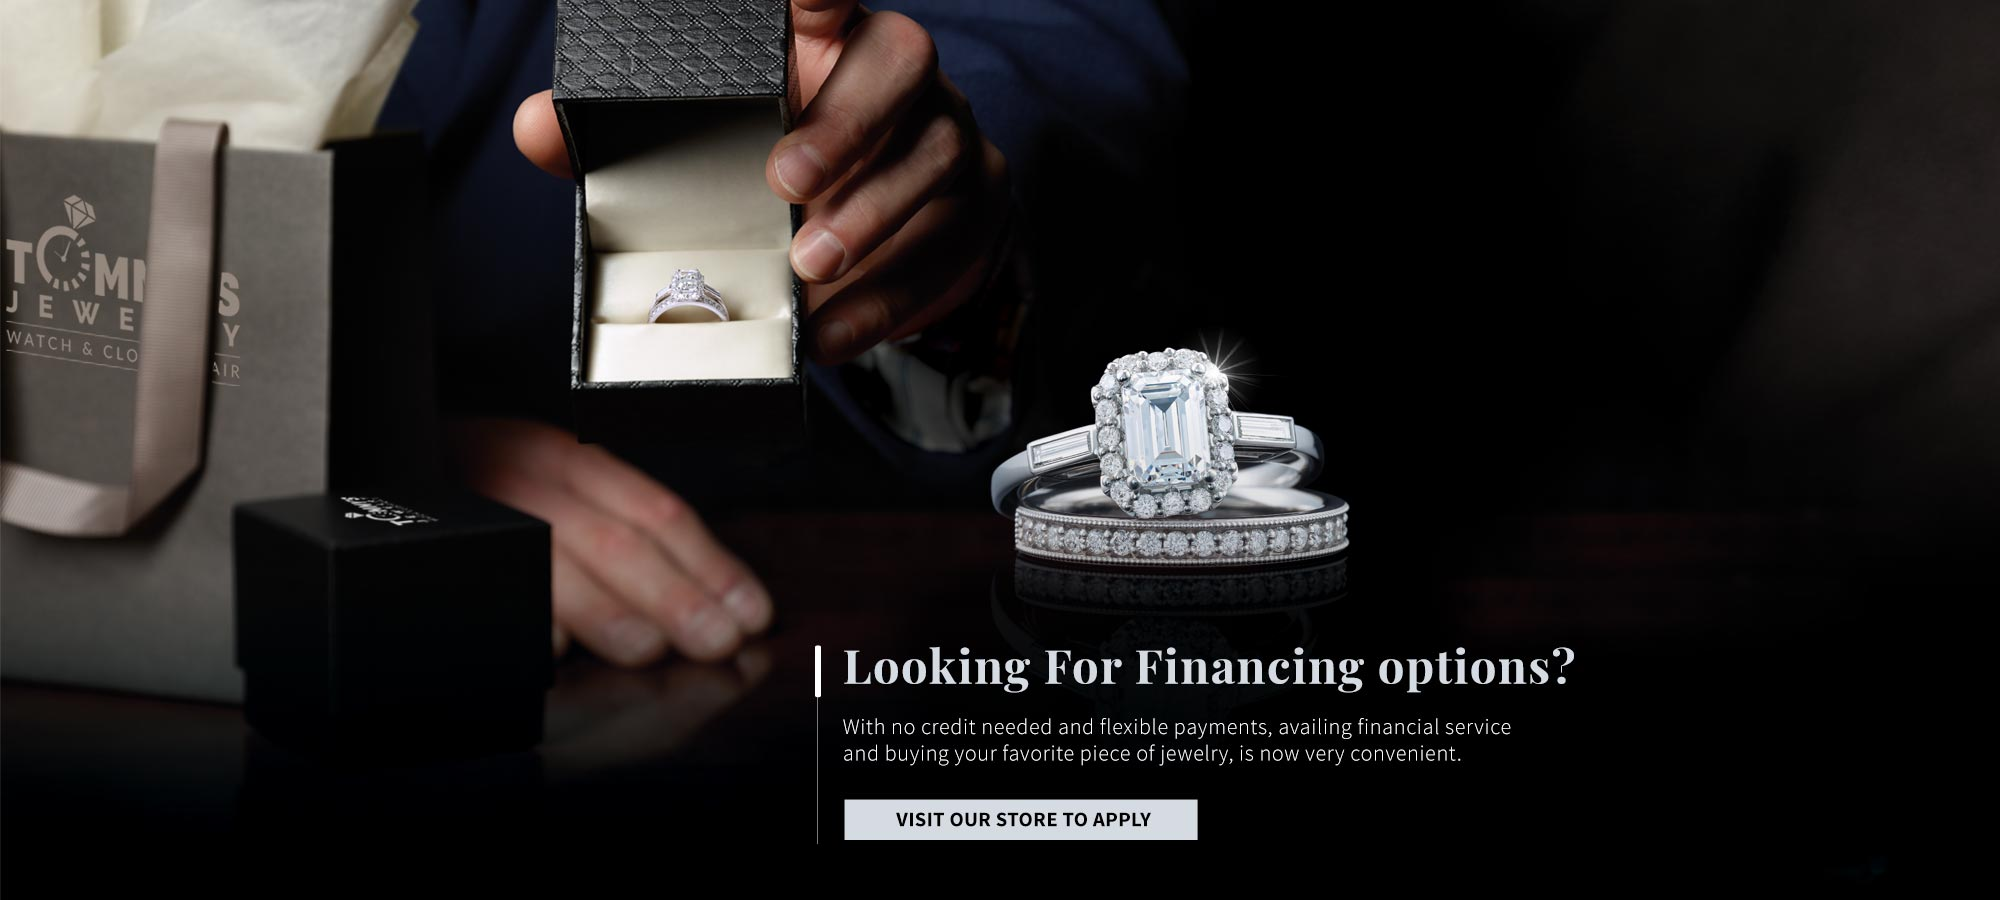 Jewelry Financing Option Available At Tommy's Jewelry Watch & Clock Repair